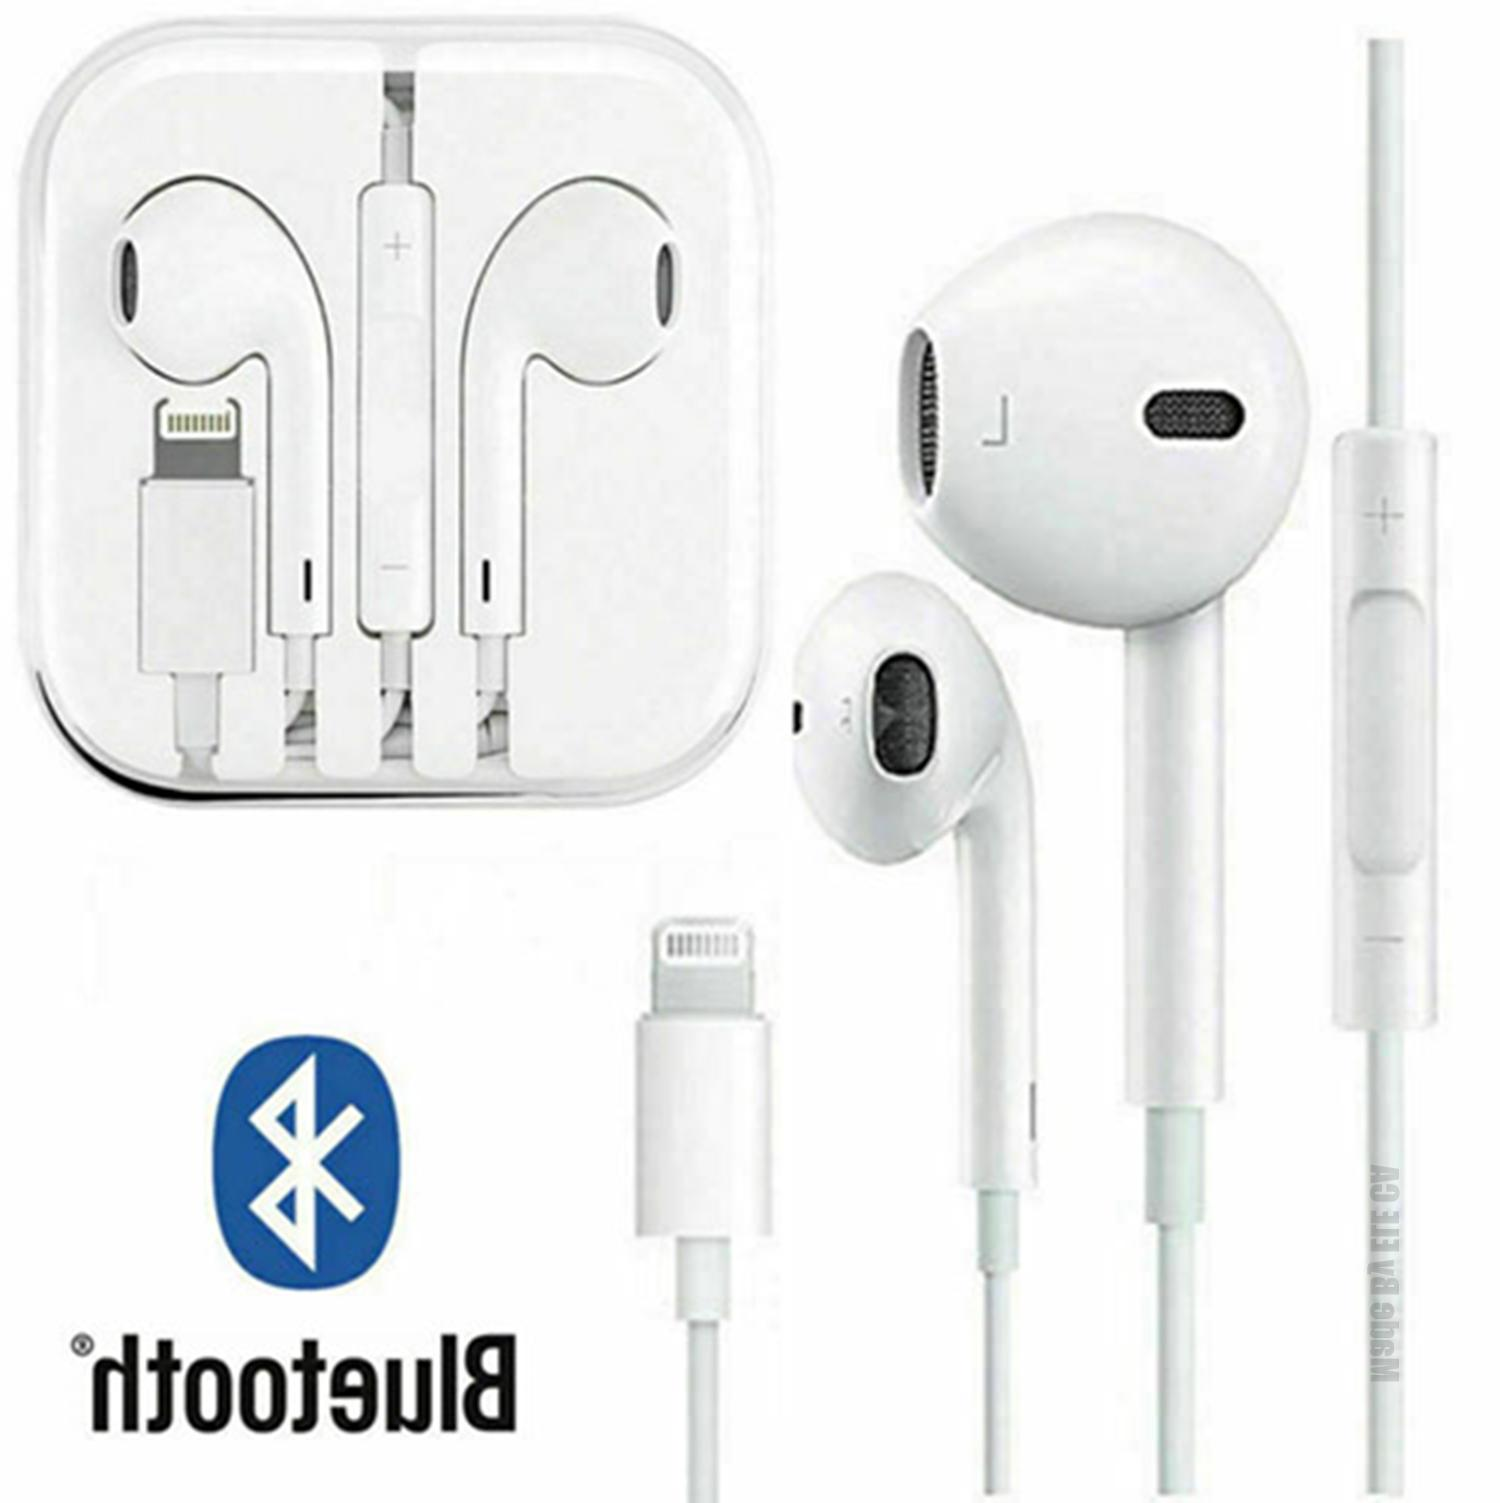 New For Apple iPhone 7 8 Plus X XS MAX XR Wired Headphones H